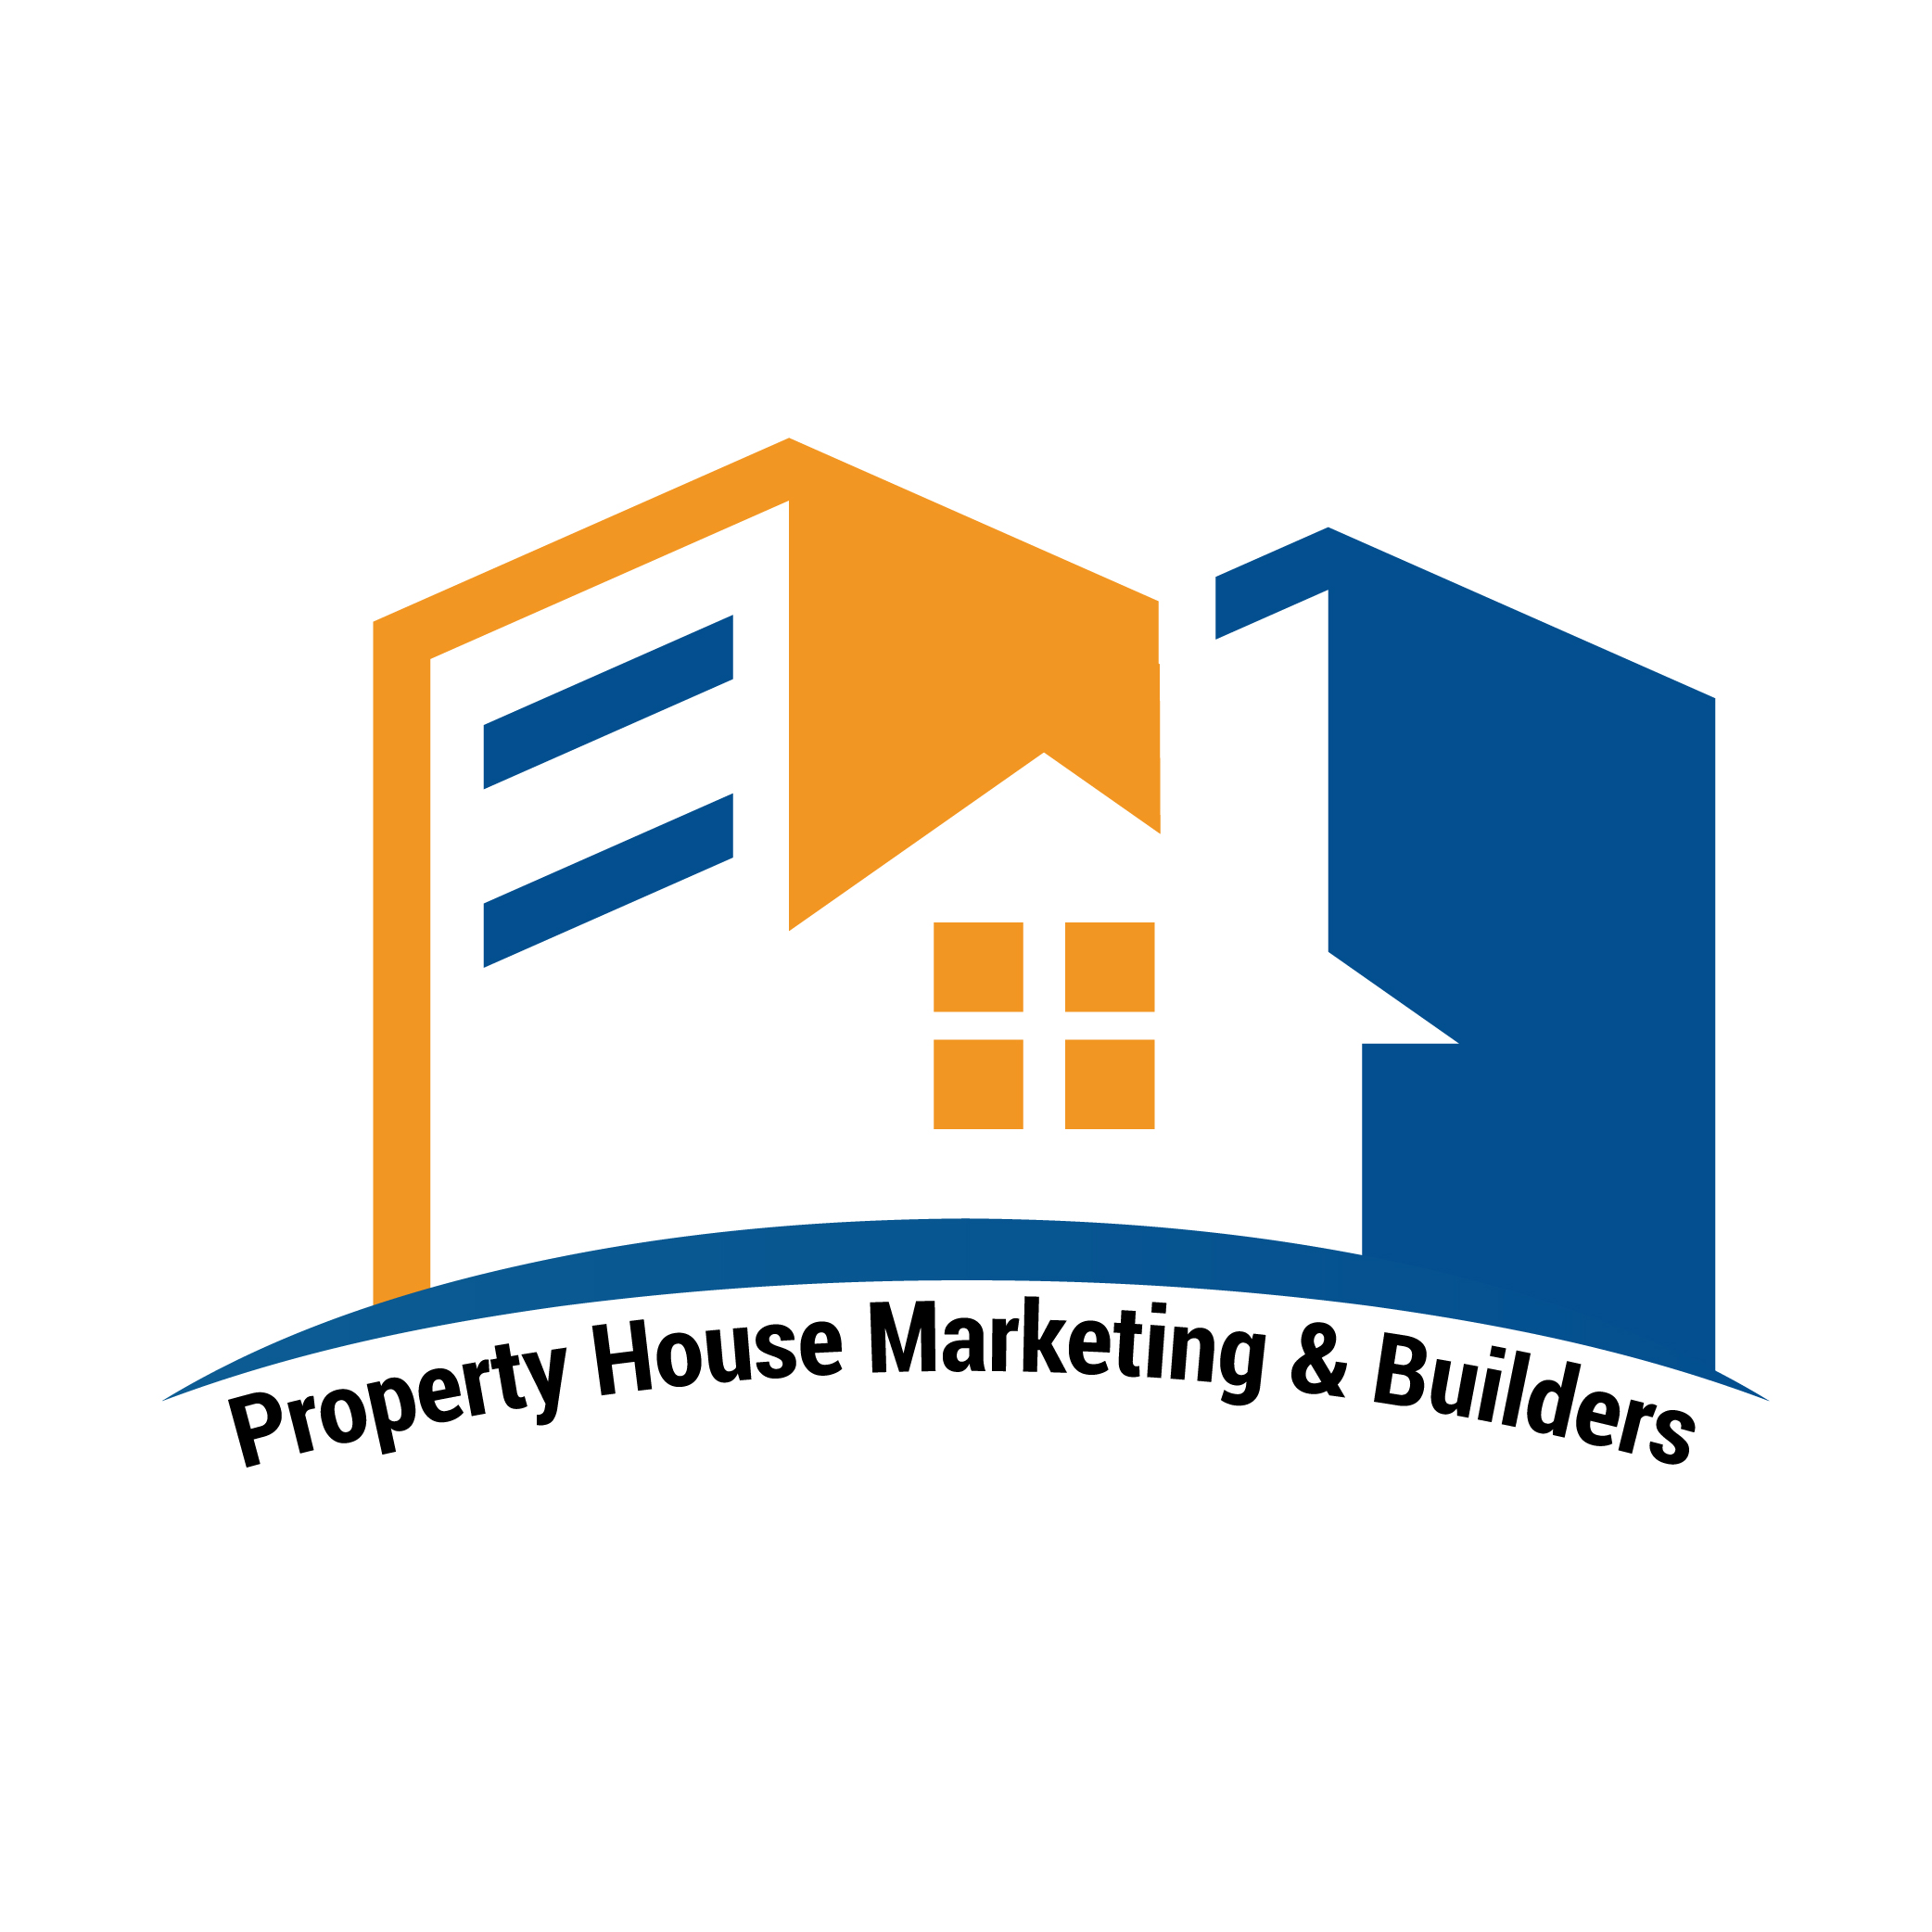 Property House Marketing & Builders